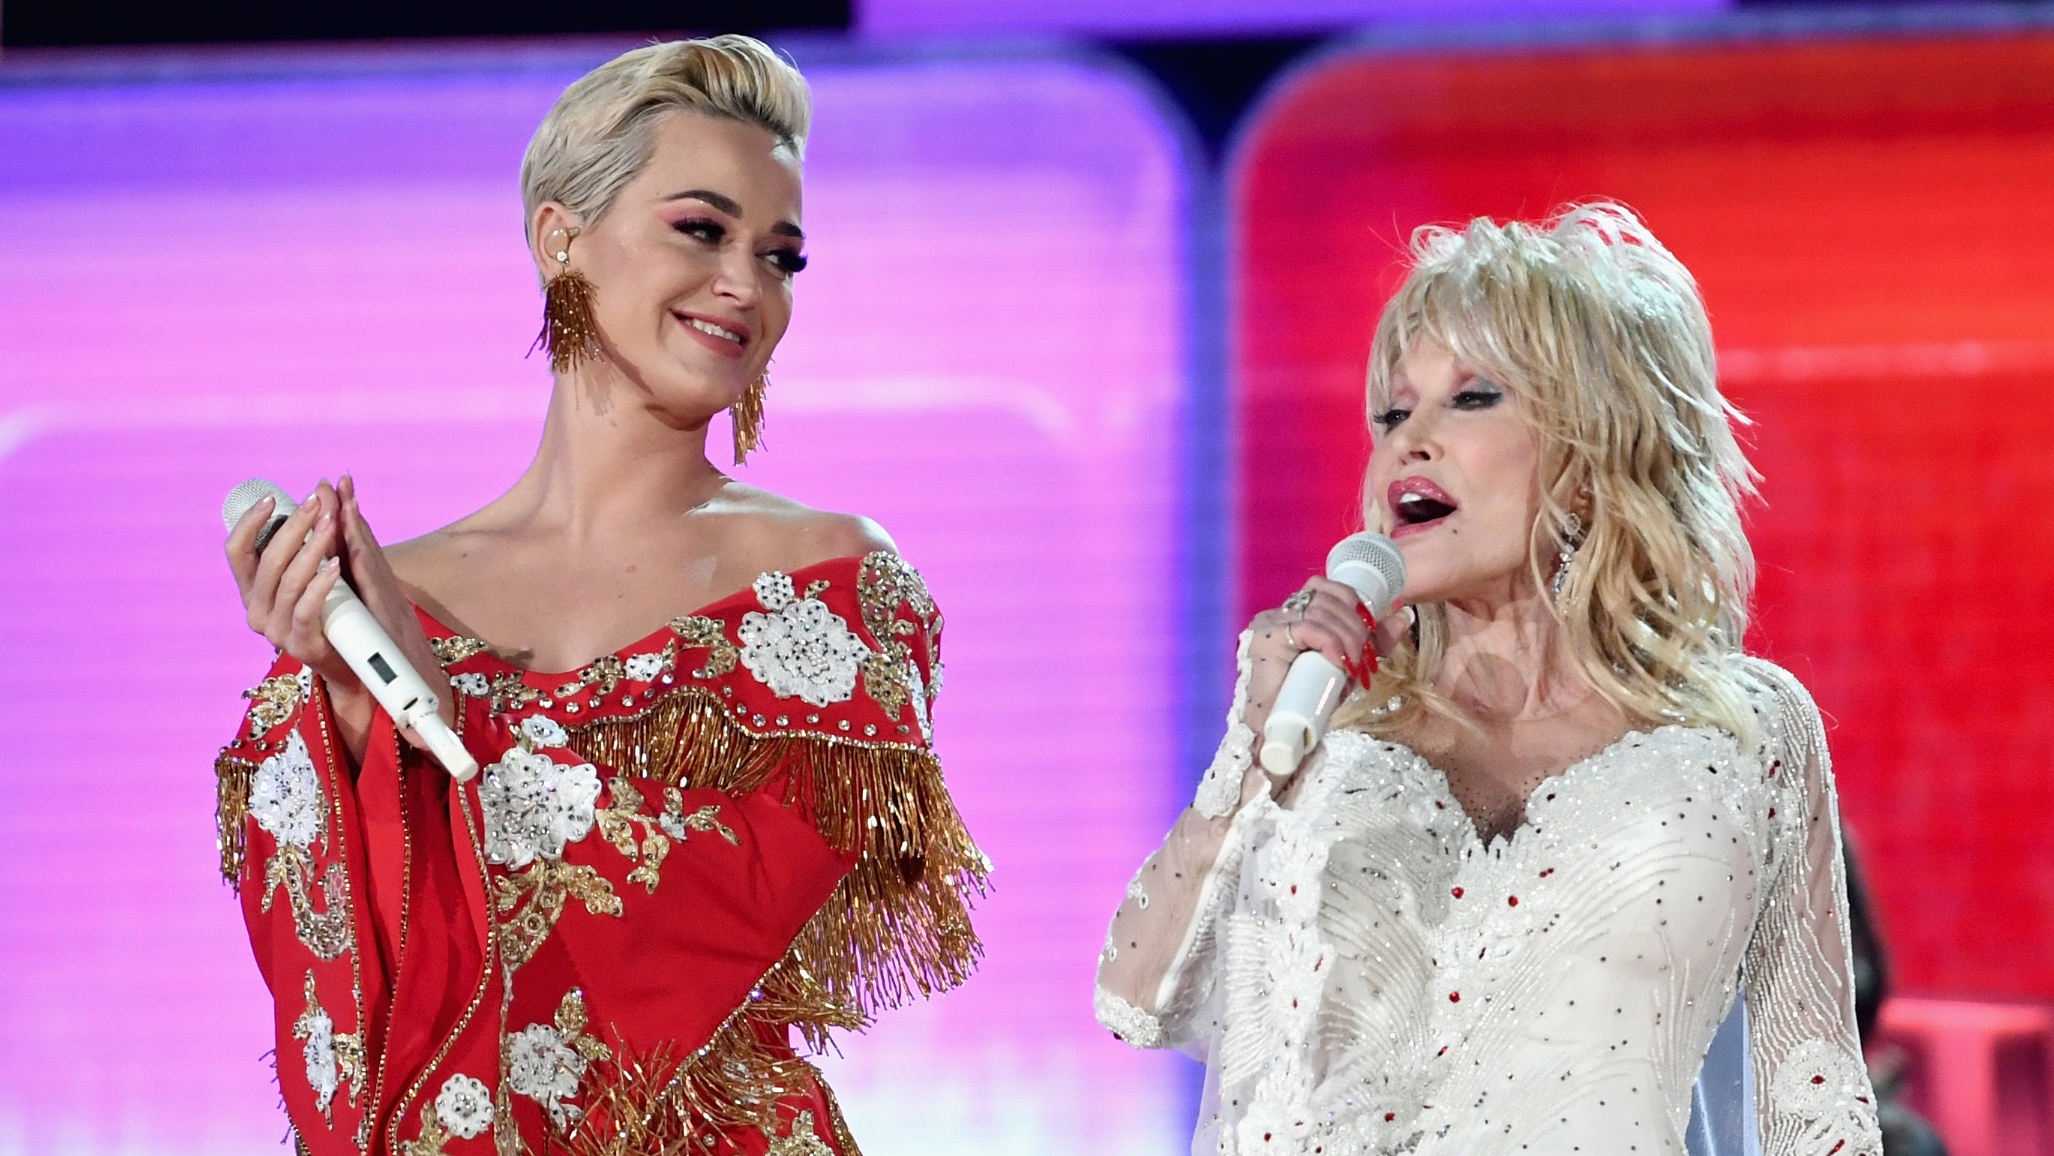 Grammys 2019: Dolly Parton respected in all star reverence featuring Miley Cyrus and Little Big Town